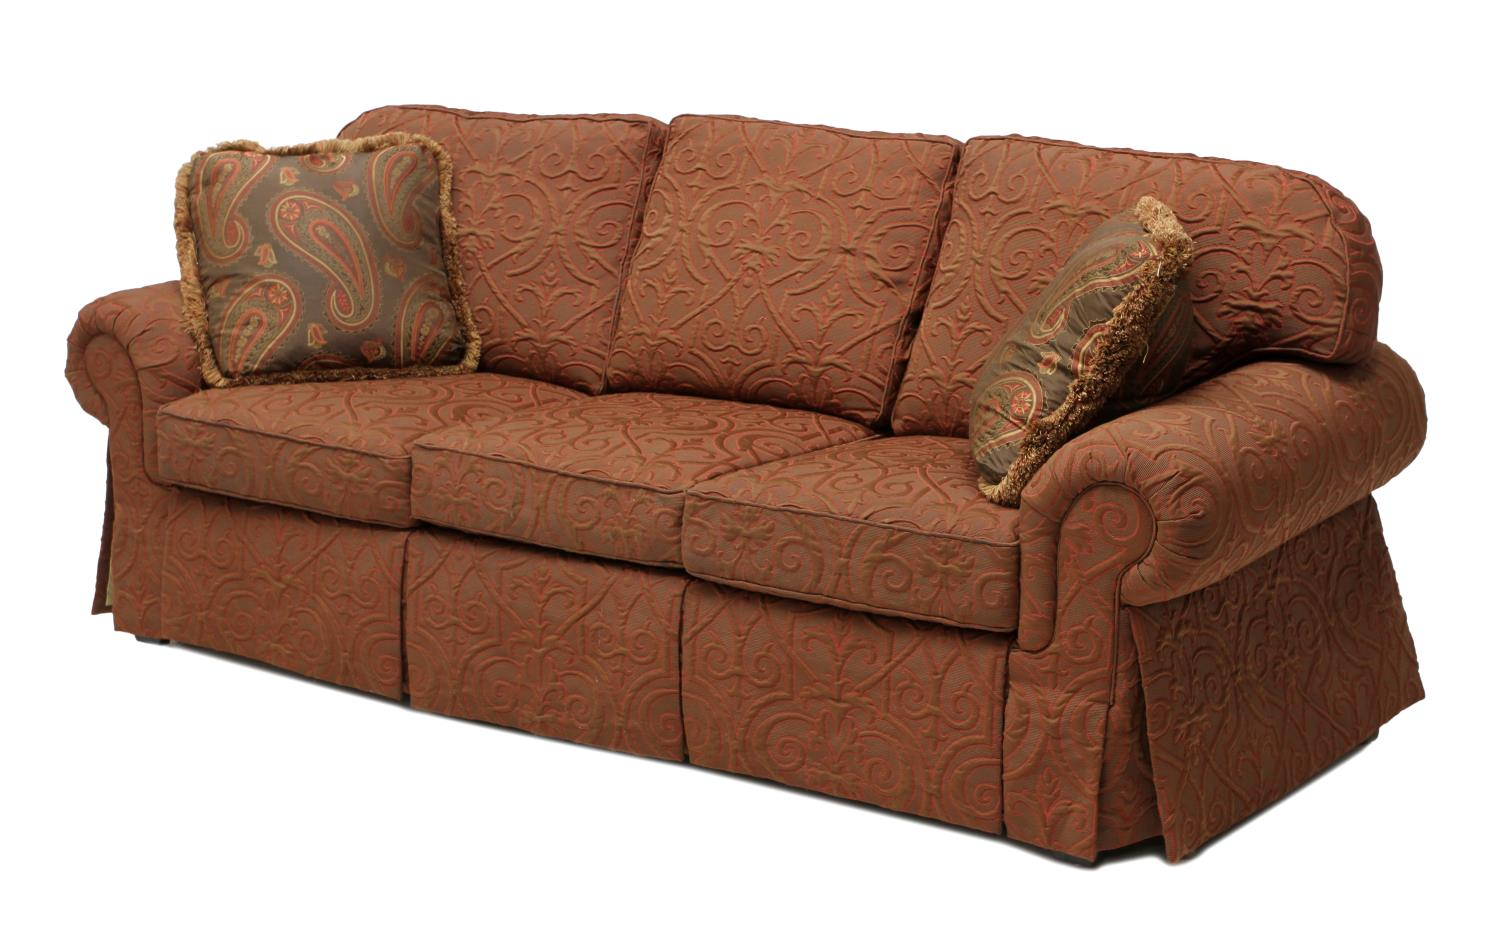 Big Sofa Christian Large Designer Three Cushion Sofa August Estates Auction